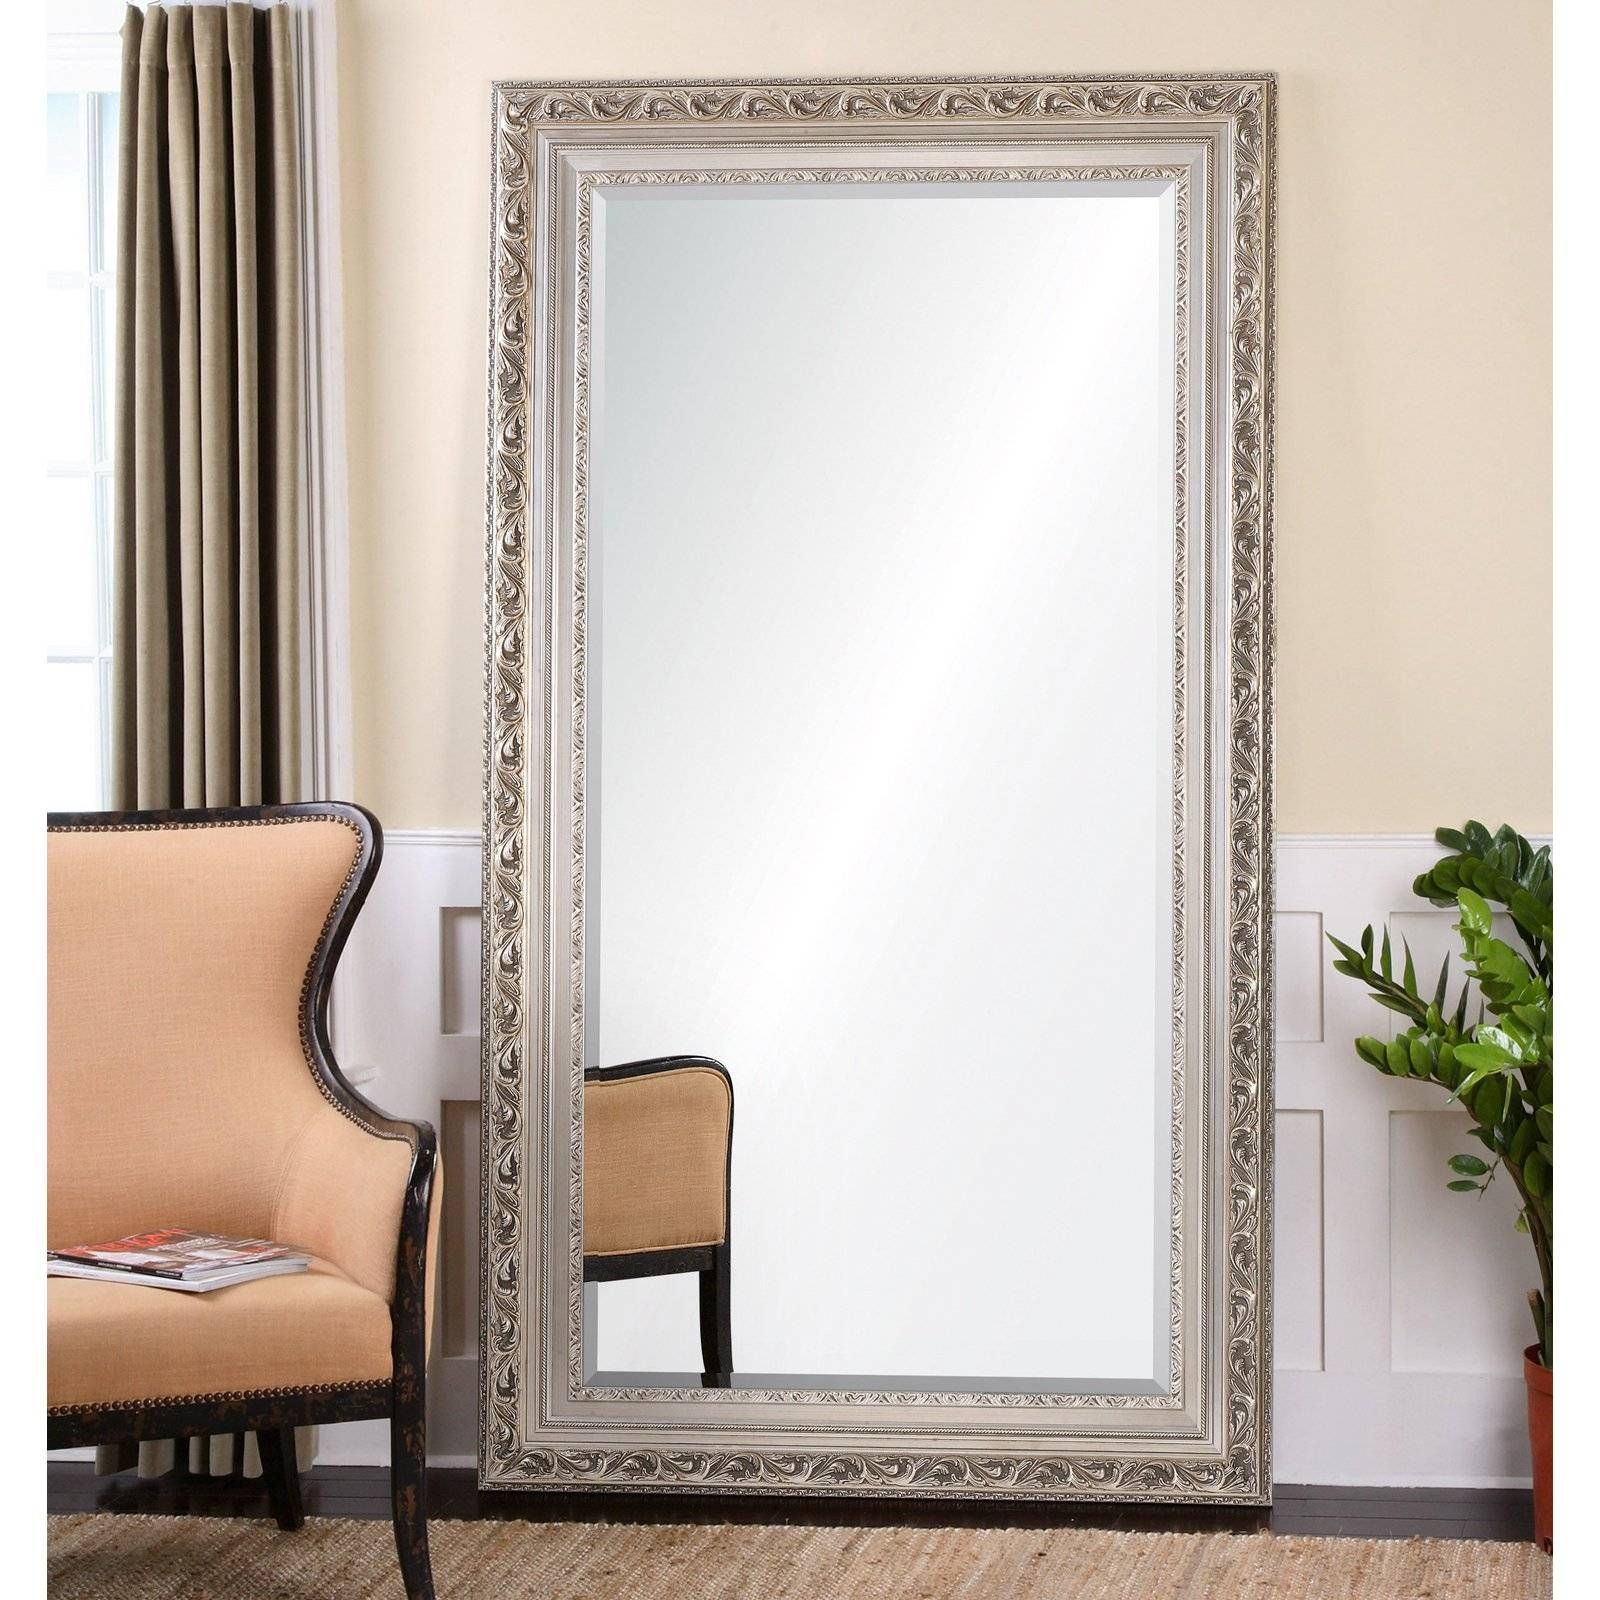 Full Length Mirrors Cheap 82 Cute Interior And Full Size Of for Decorative Full Length Mirrors (Image 13 of 25)